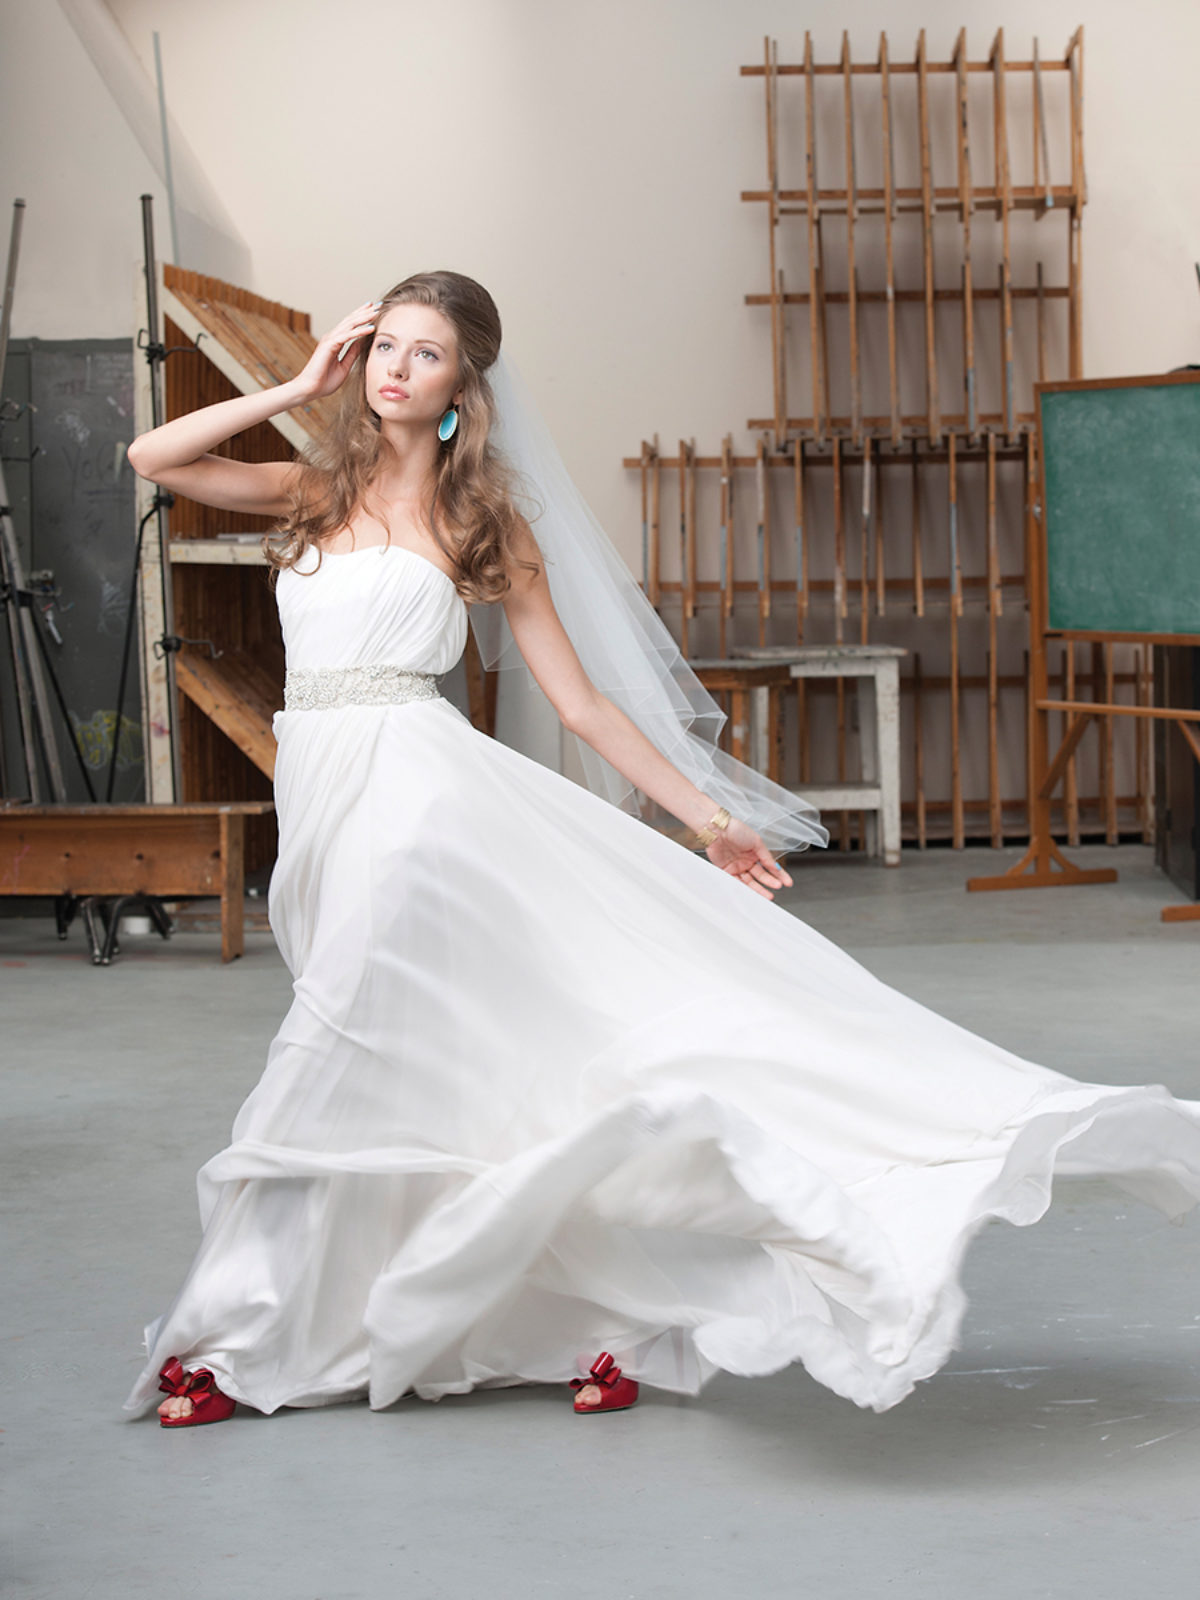 The Way She Moves - Baltimore Bride magazine